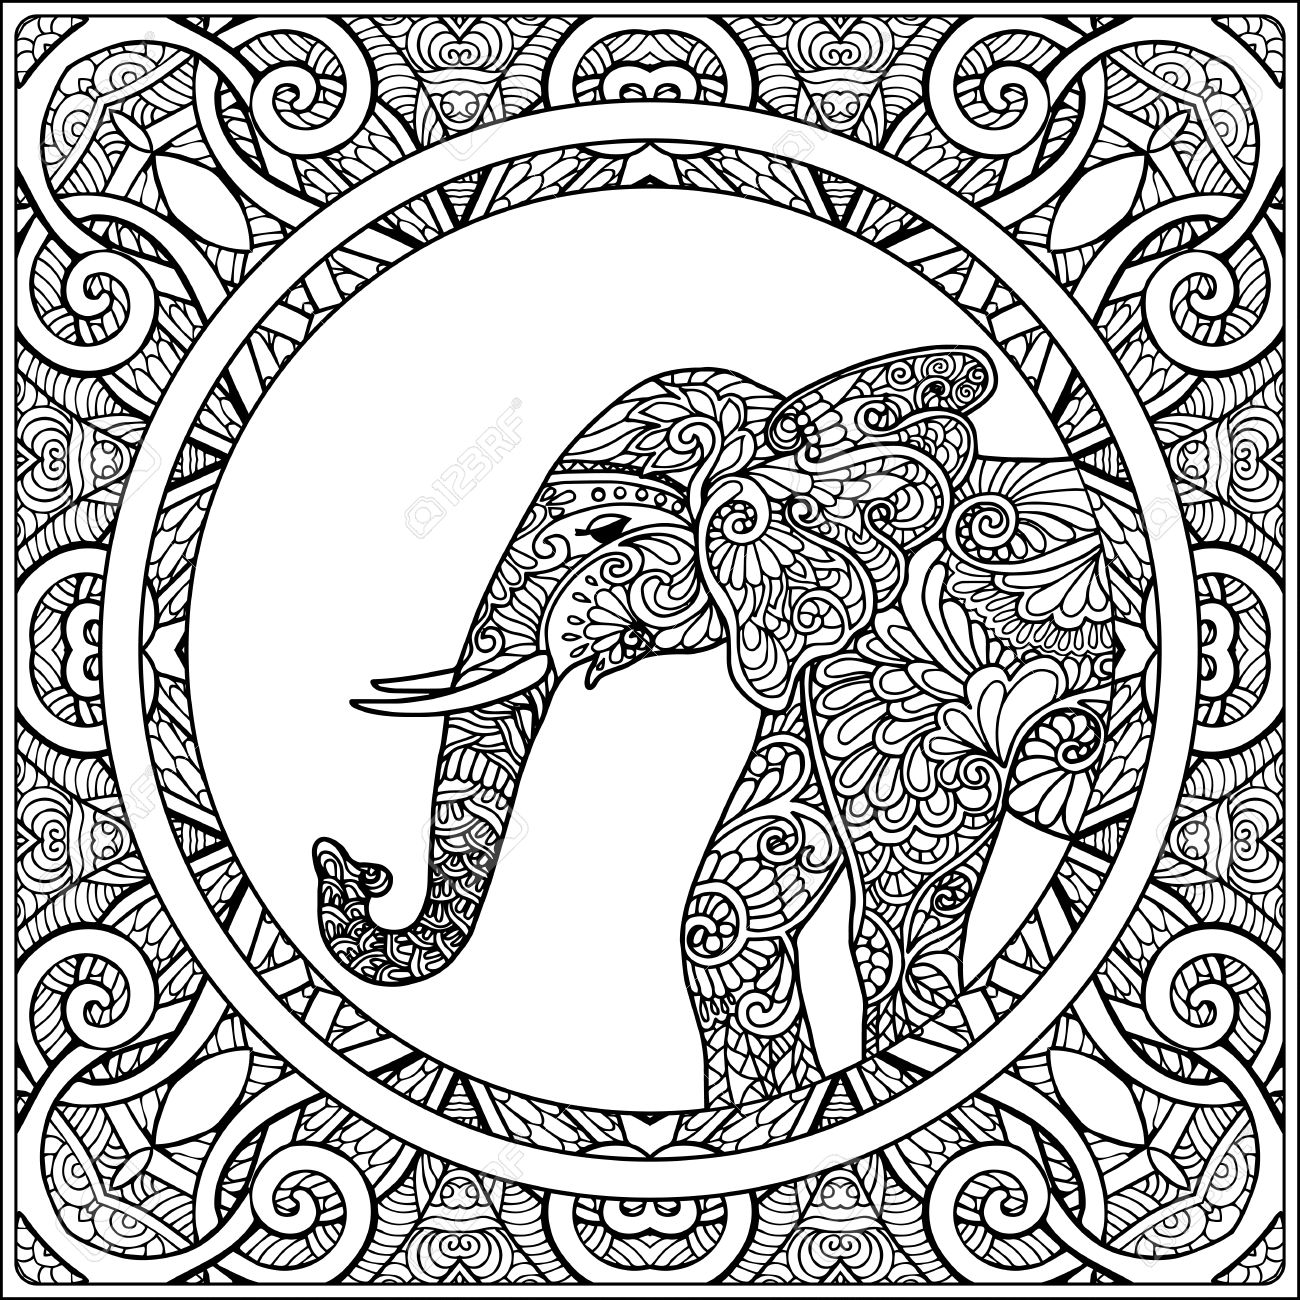 1300x1300 Coloring Page With Elephant In Decorative Mandala Frame. Coloring